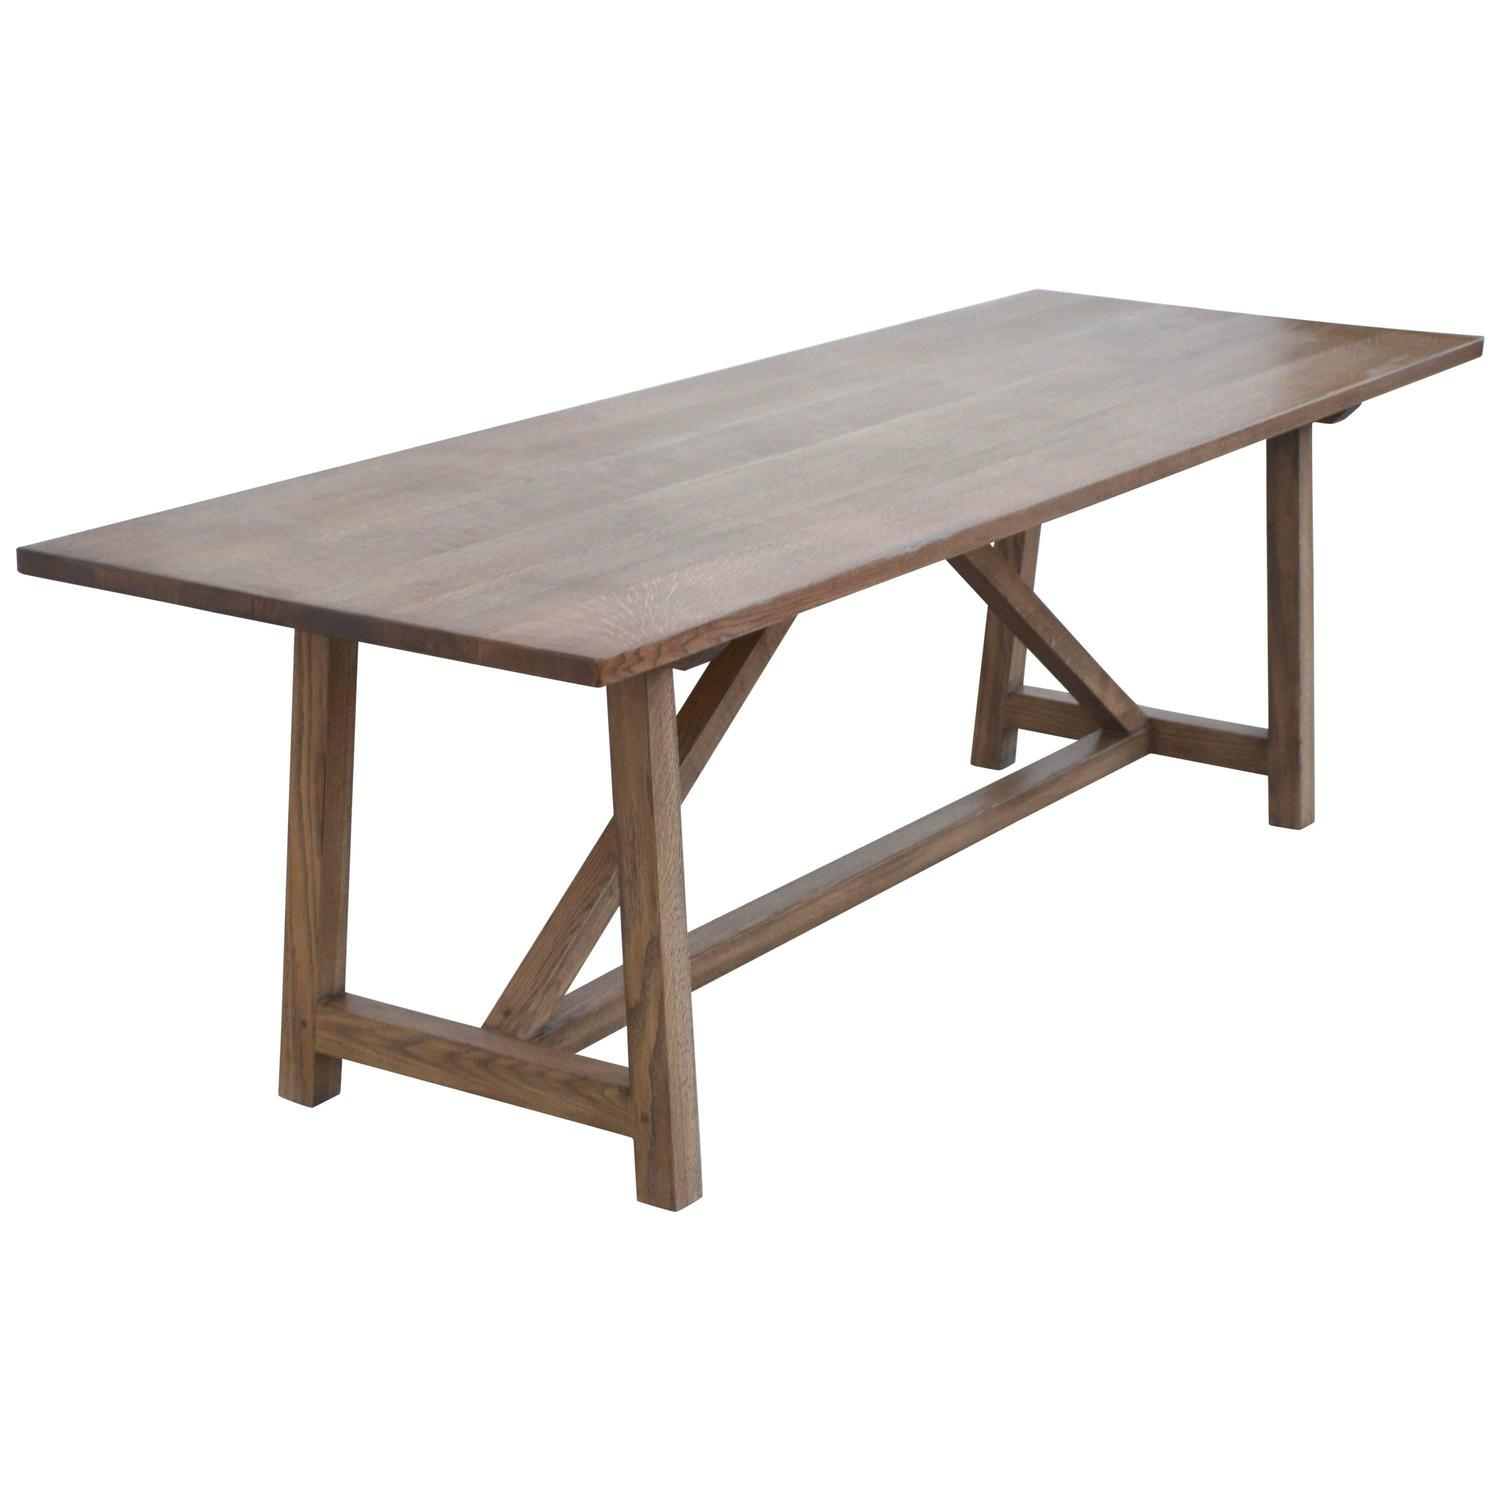 Custom dining table in rift white oak built to order by petersen antiques